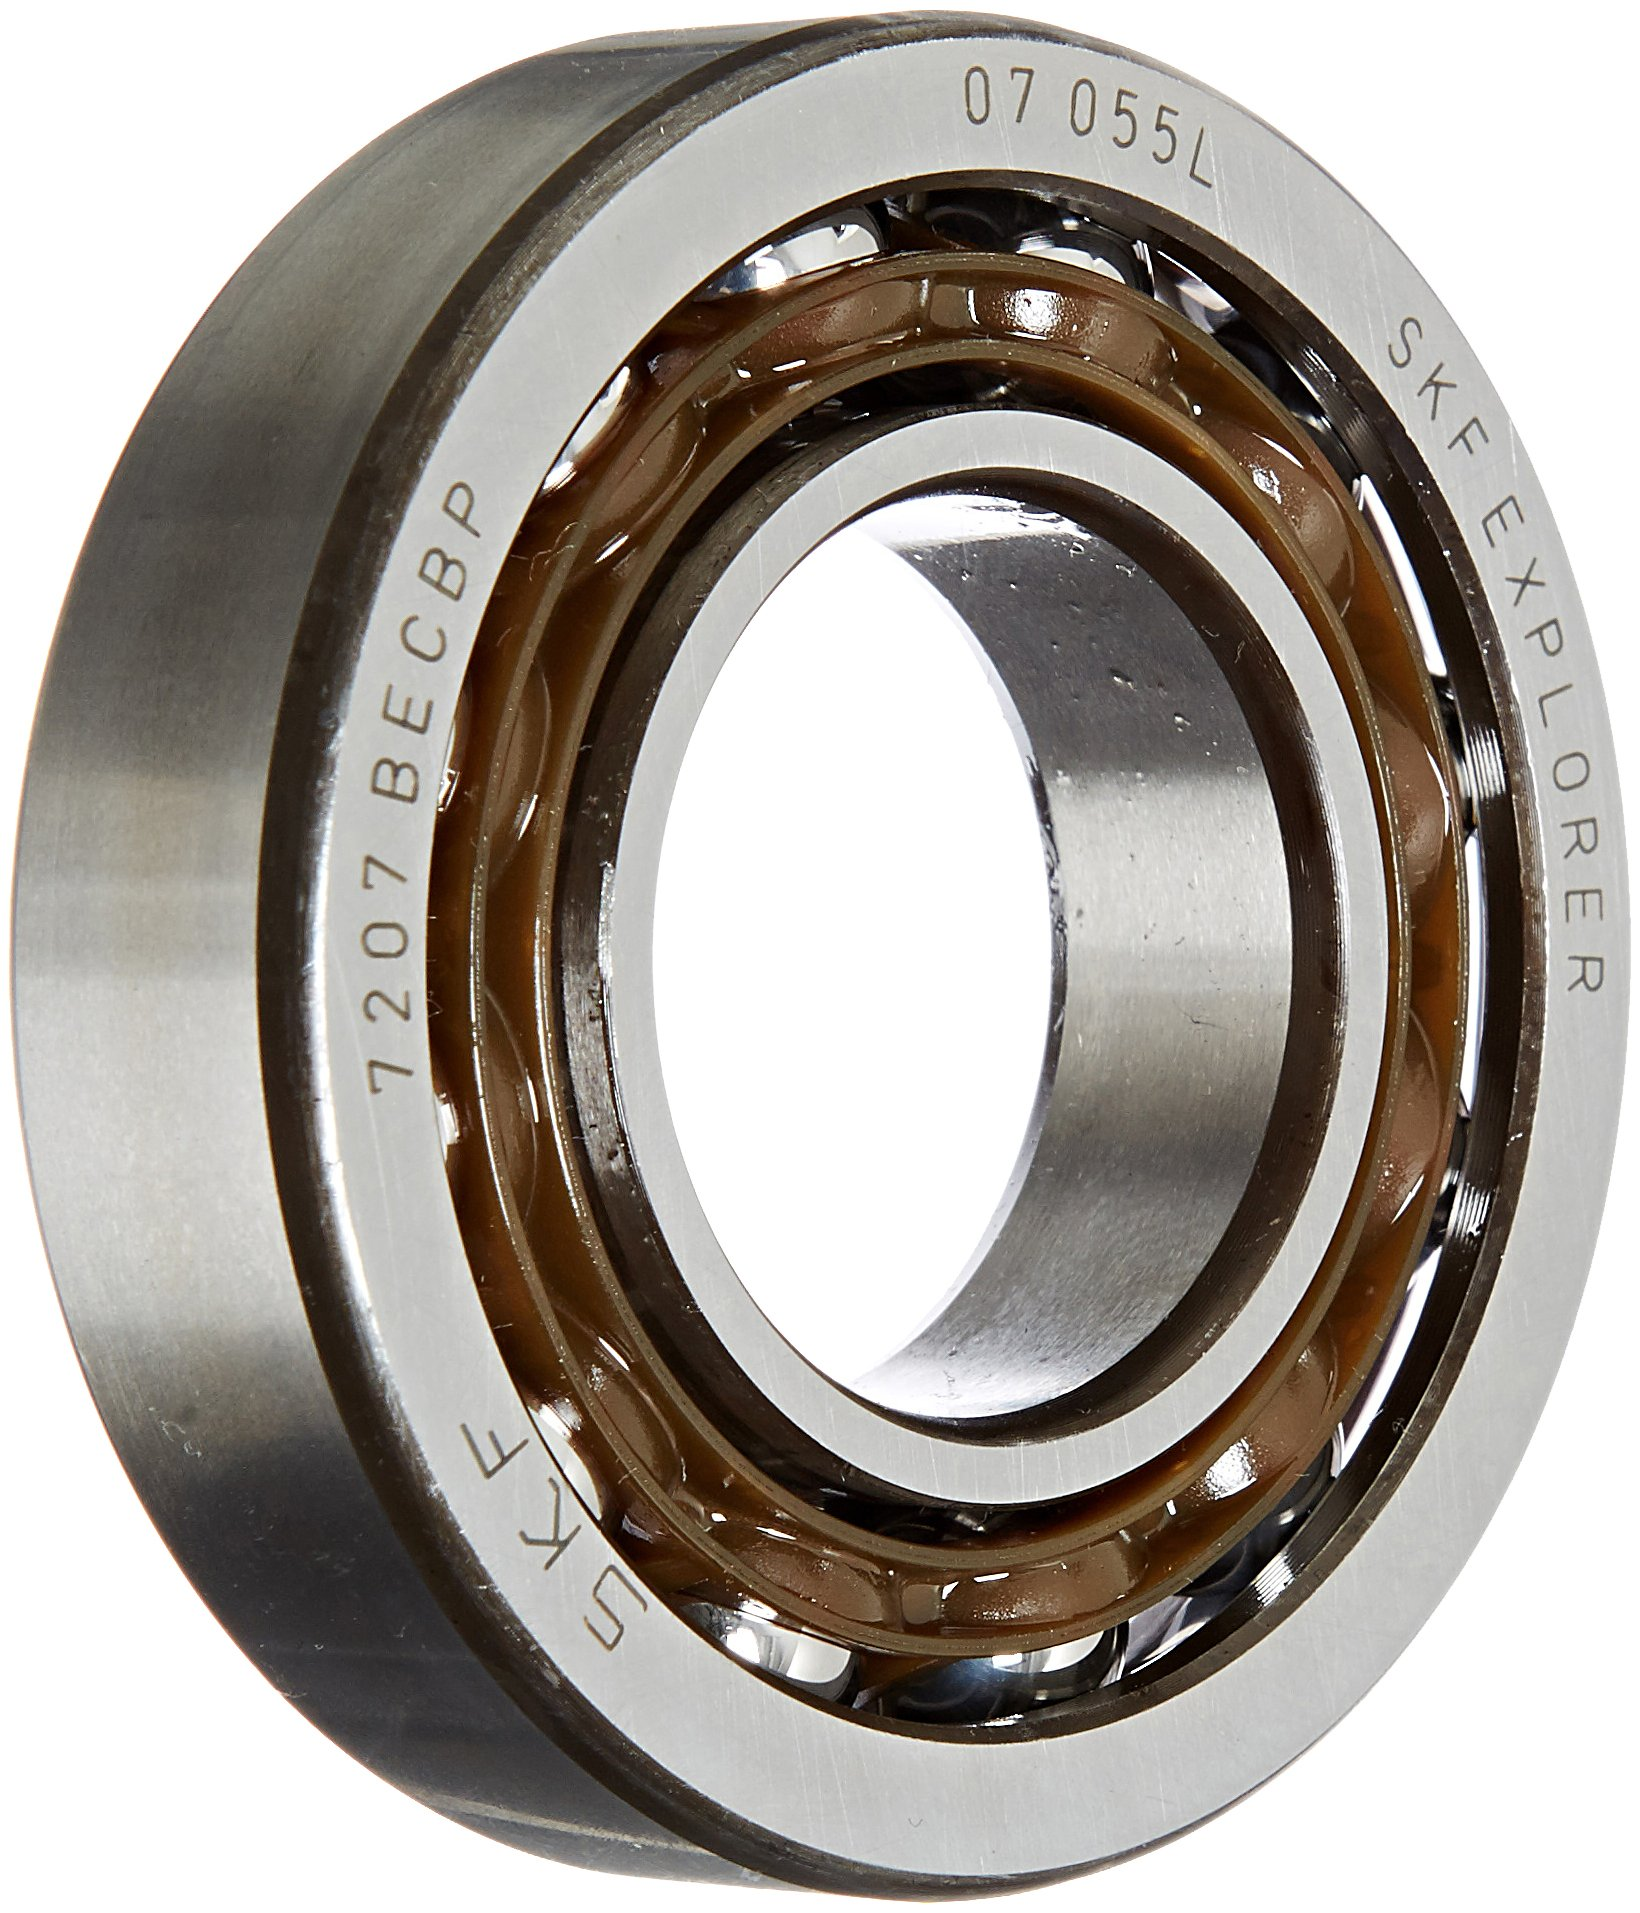 SKF 7202 BECBP Light Series Angular Contact Ball Bearing, Universal Mounting, ABEC 1 Precision, 40° Contact Angle, Open, Plastic Cage, Normal Clearance, 15mm Bore, 35mm OD, 11mm Width, 4800.0 pounds Static Load Capacity, 8840.00 pounds Dynamic Load Capacity